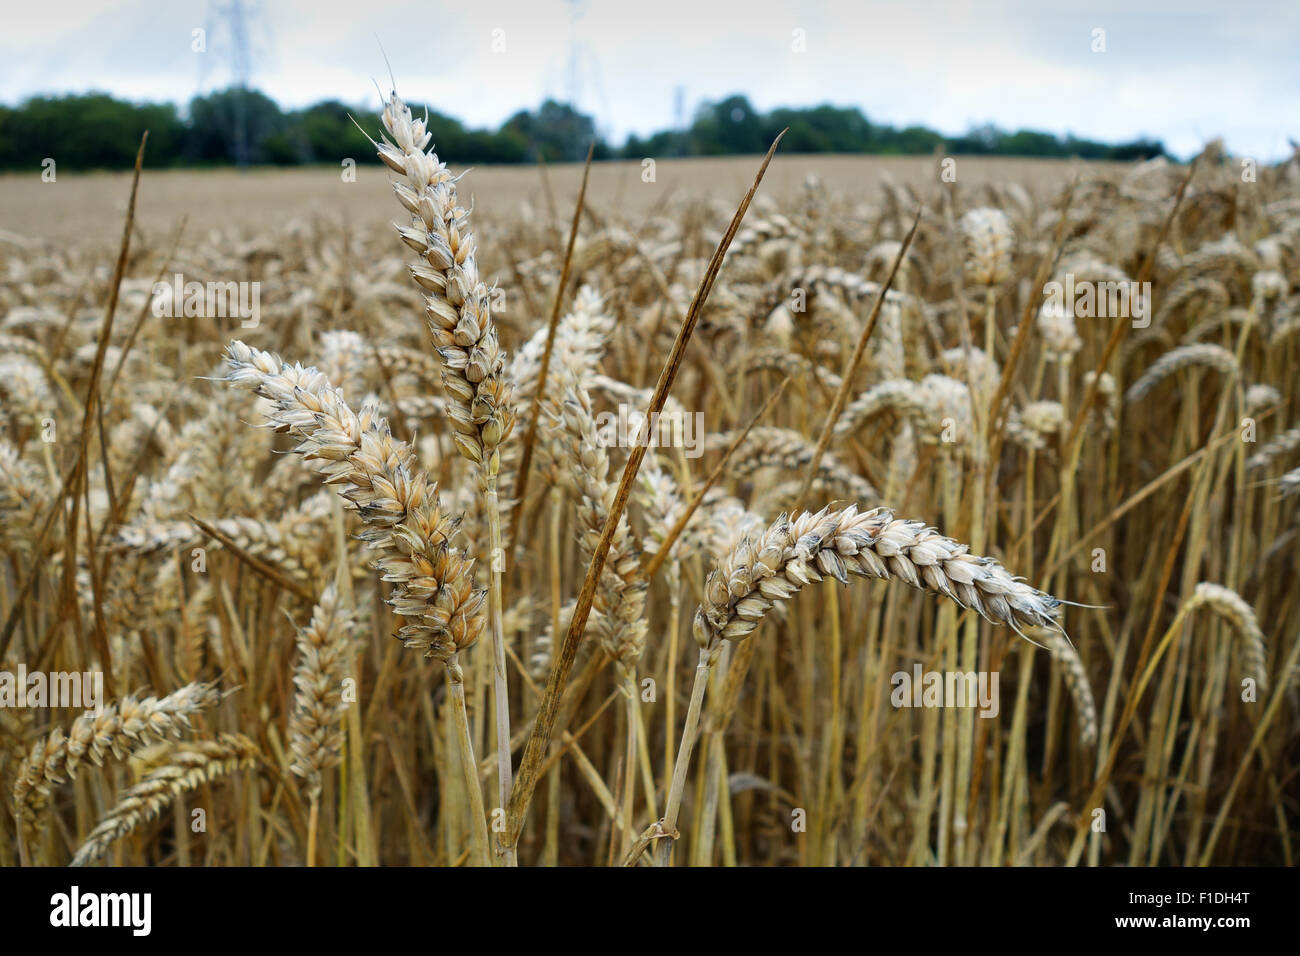 Wheat ripening in damp conditions in Britain Uk - Stock Image